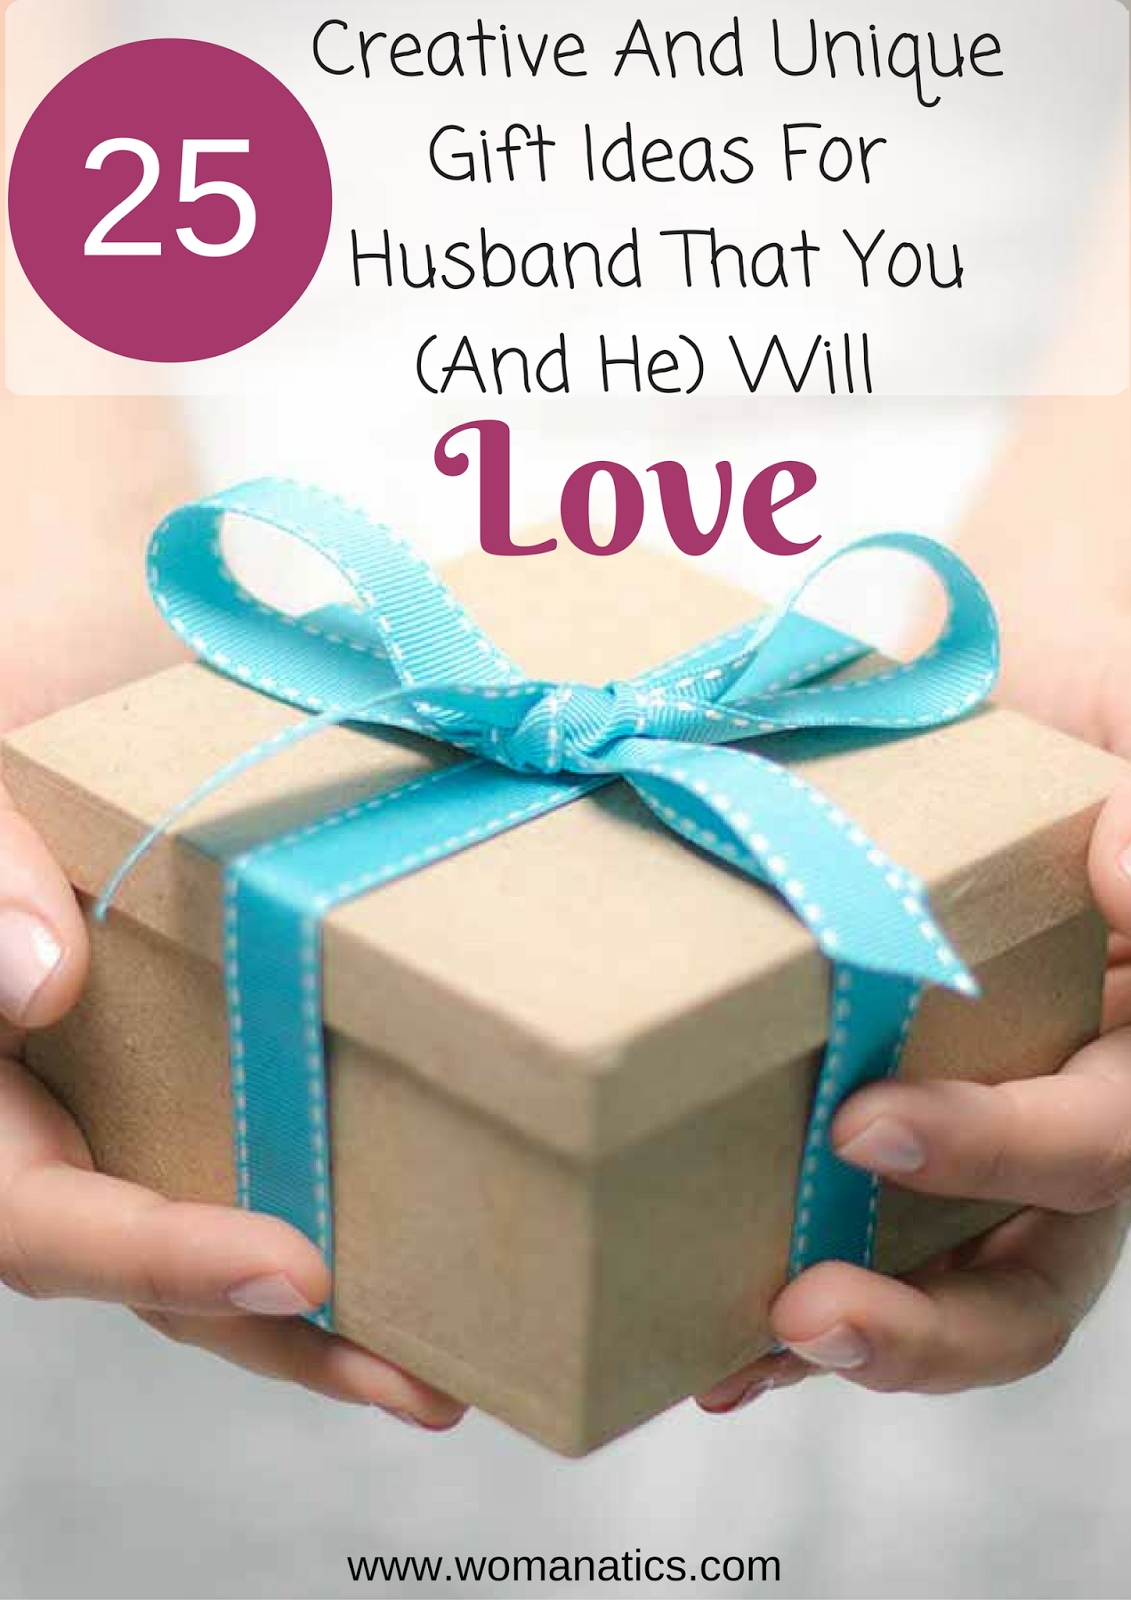 10 Fabulous Birthday Gift For Husband Ideas 25 creative and unique gift ideas for husbands birthday that you 1 2020